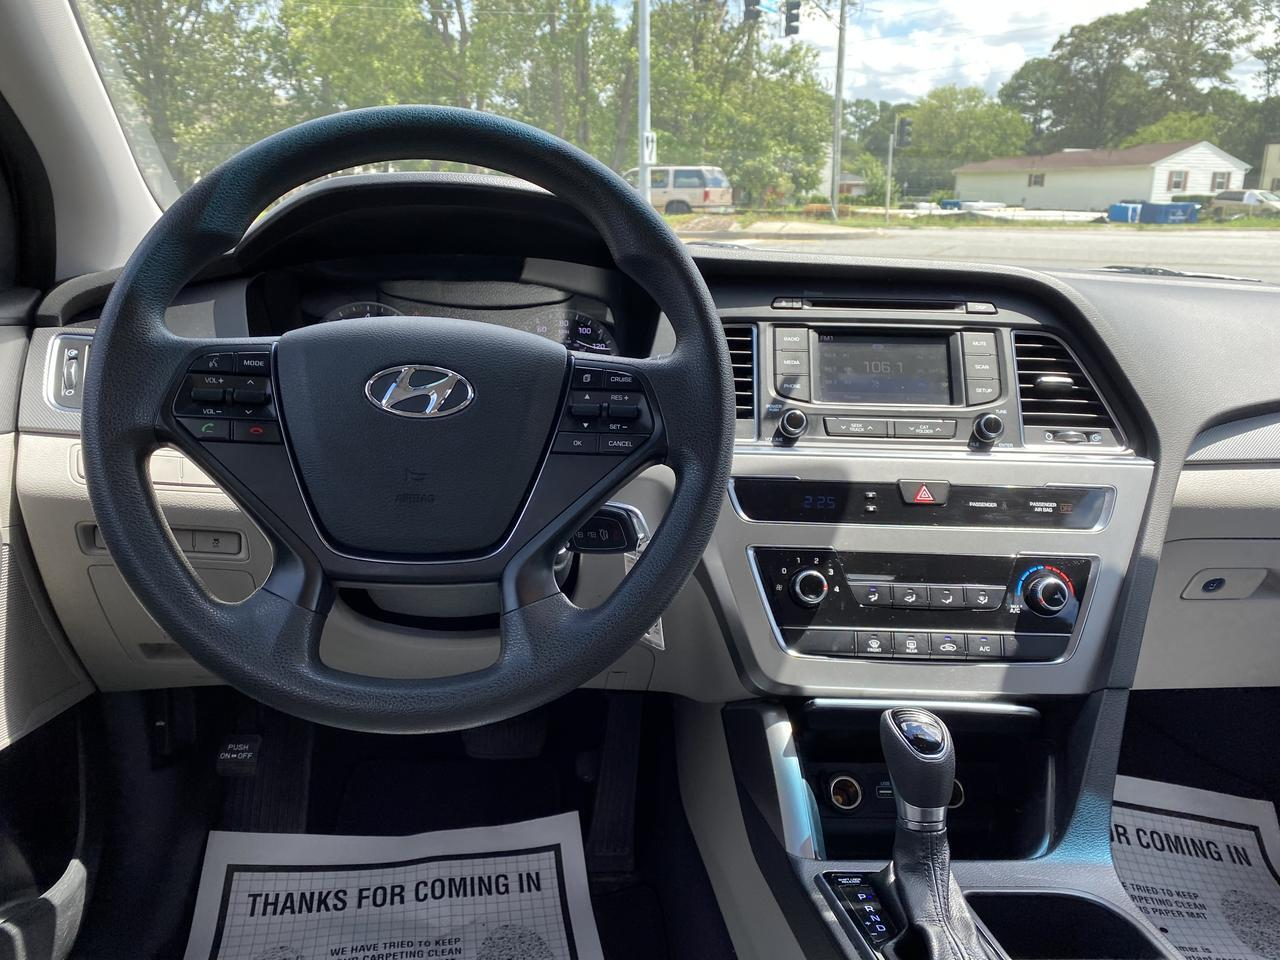 2015 HYUNDAI SONATA SE, WARRANTY, BACKUP CAM, BLUETOOTH, AUX/USB PORT, CRUISE CONTROL, A/C, 1 OWNER! Norfolk VA